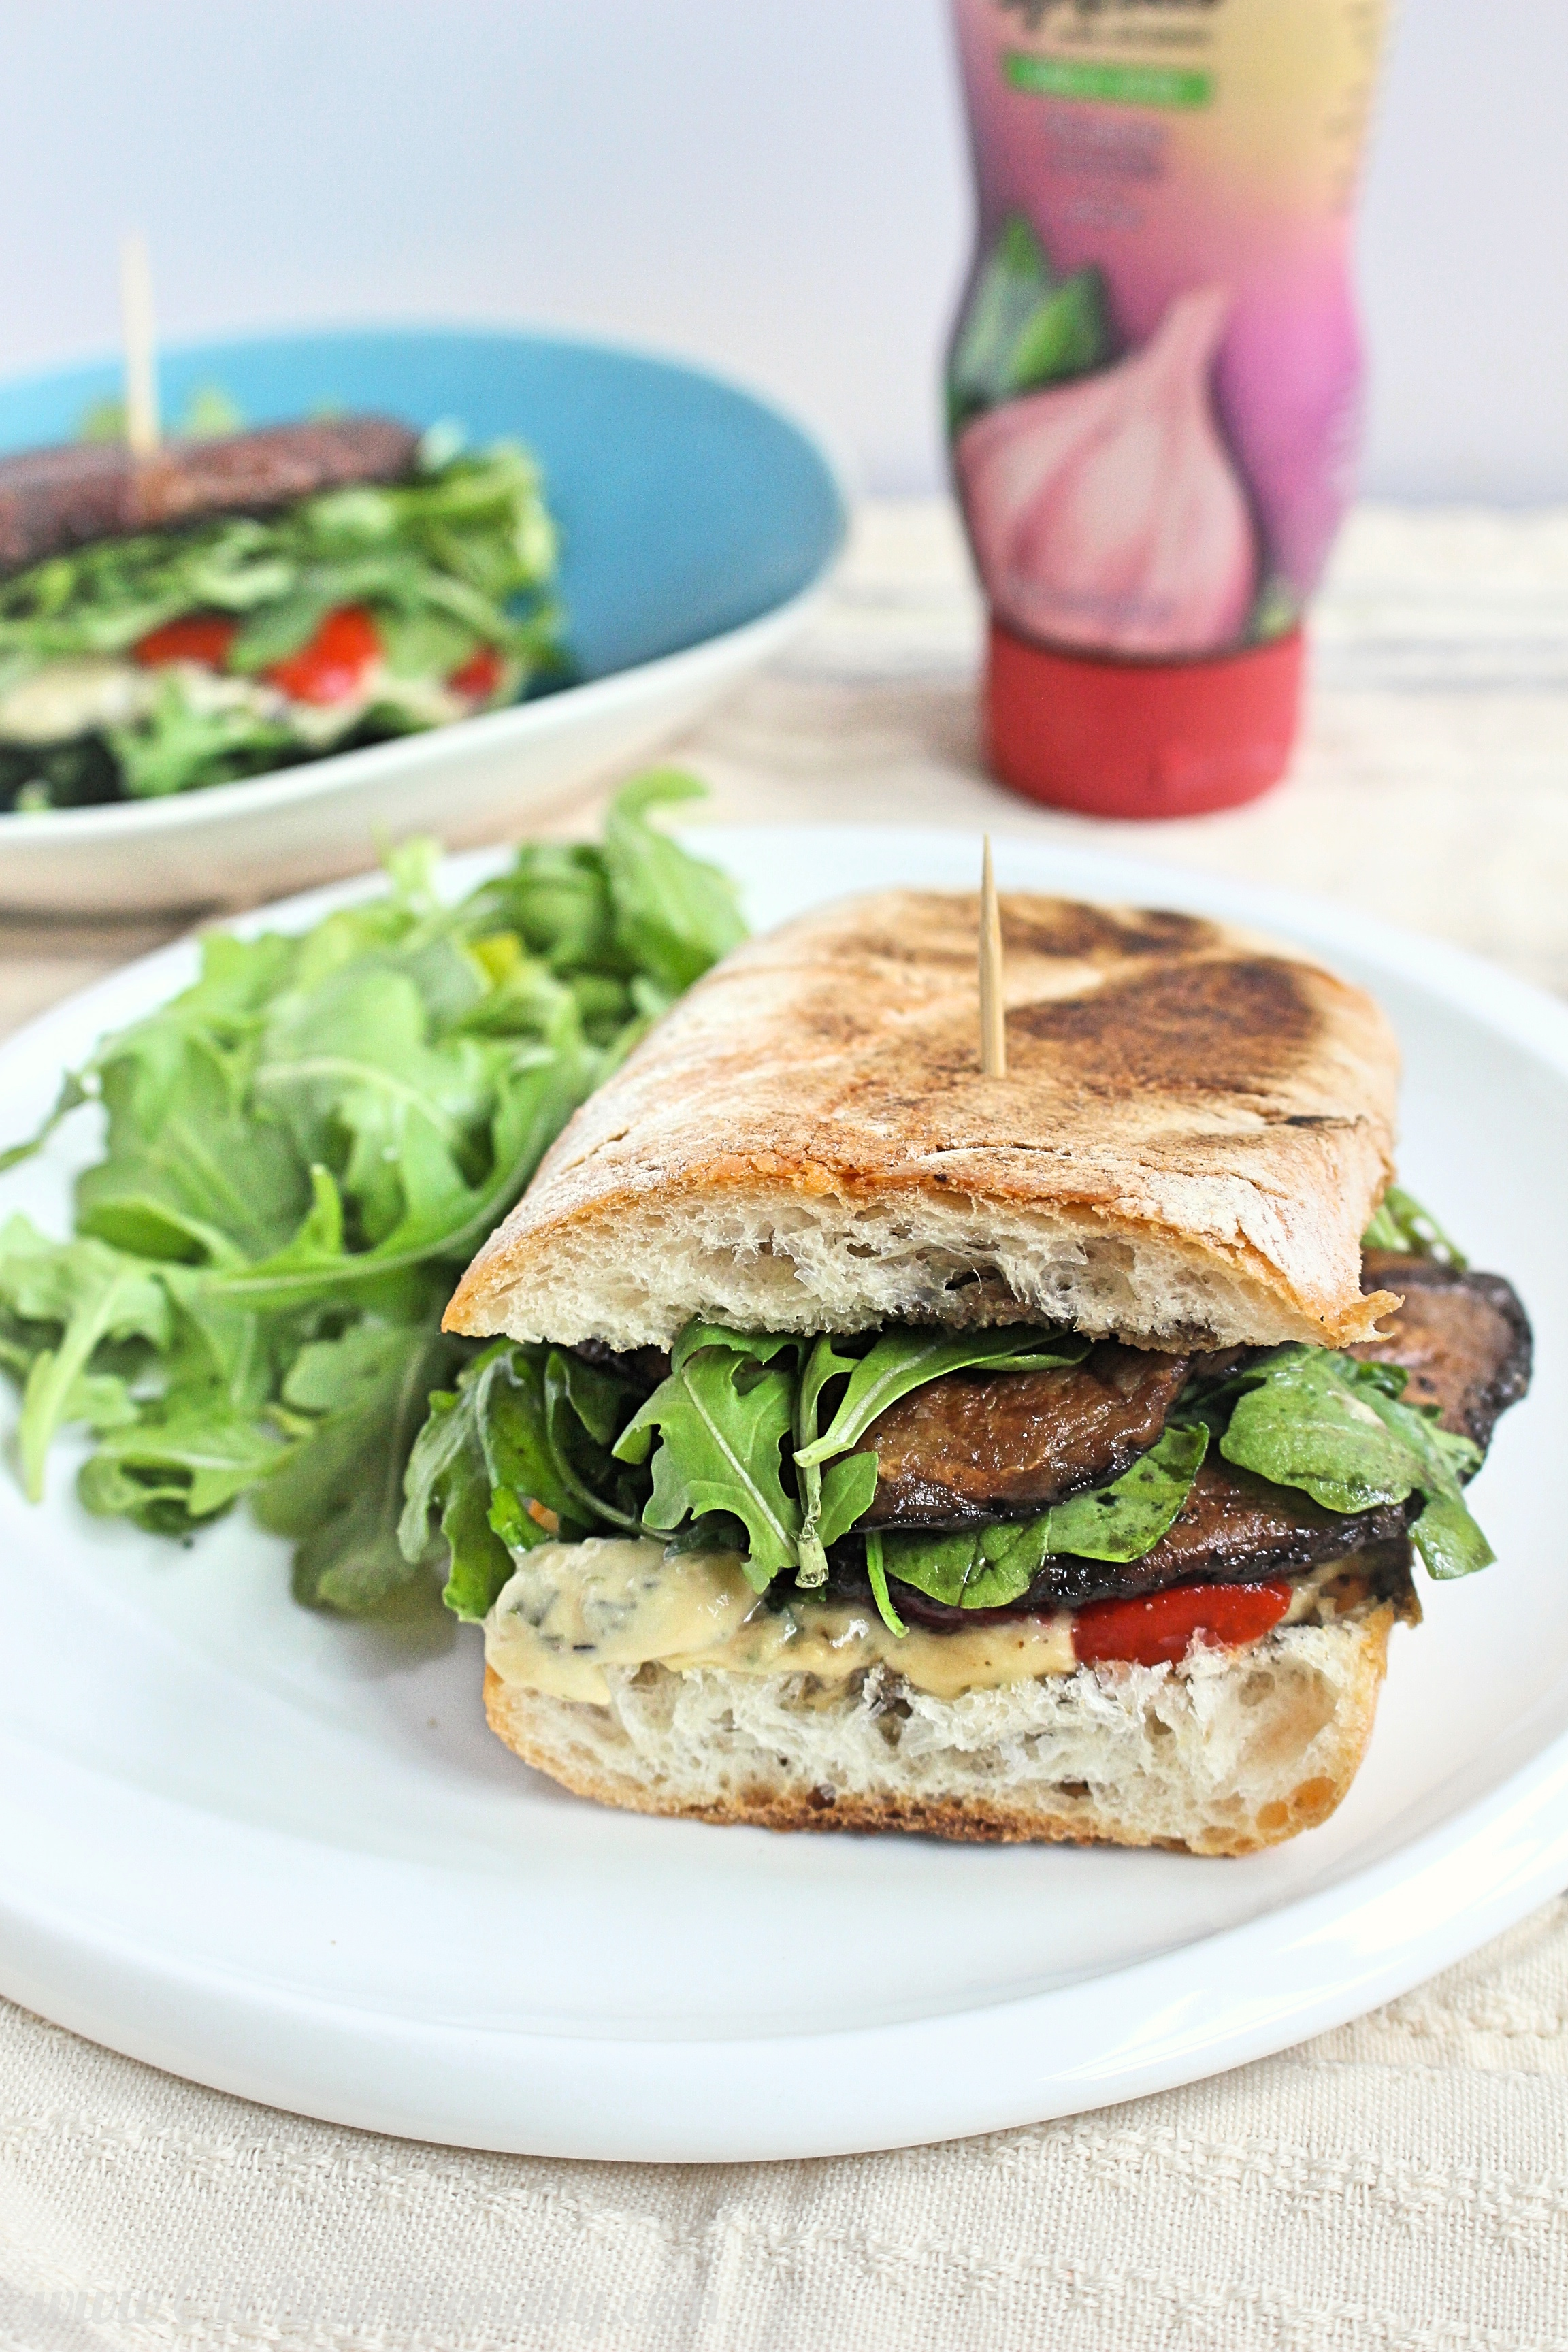 Grilled Portobello Mushroom and Arugula Sandwich with Garlic & Herb Spread | C it Nutritionally